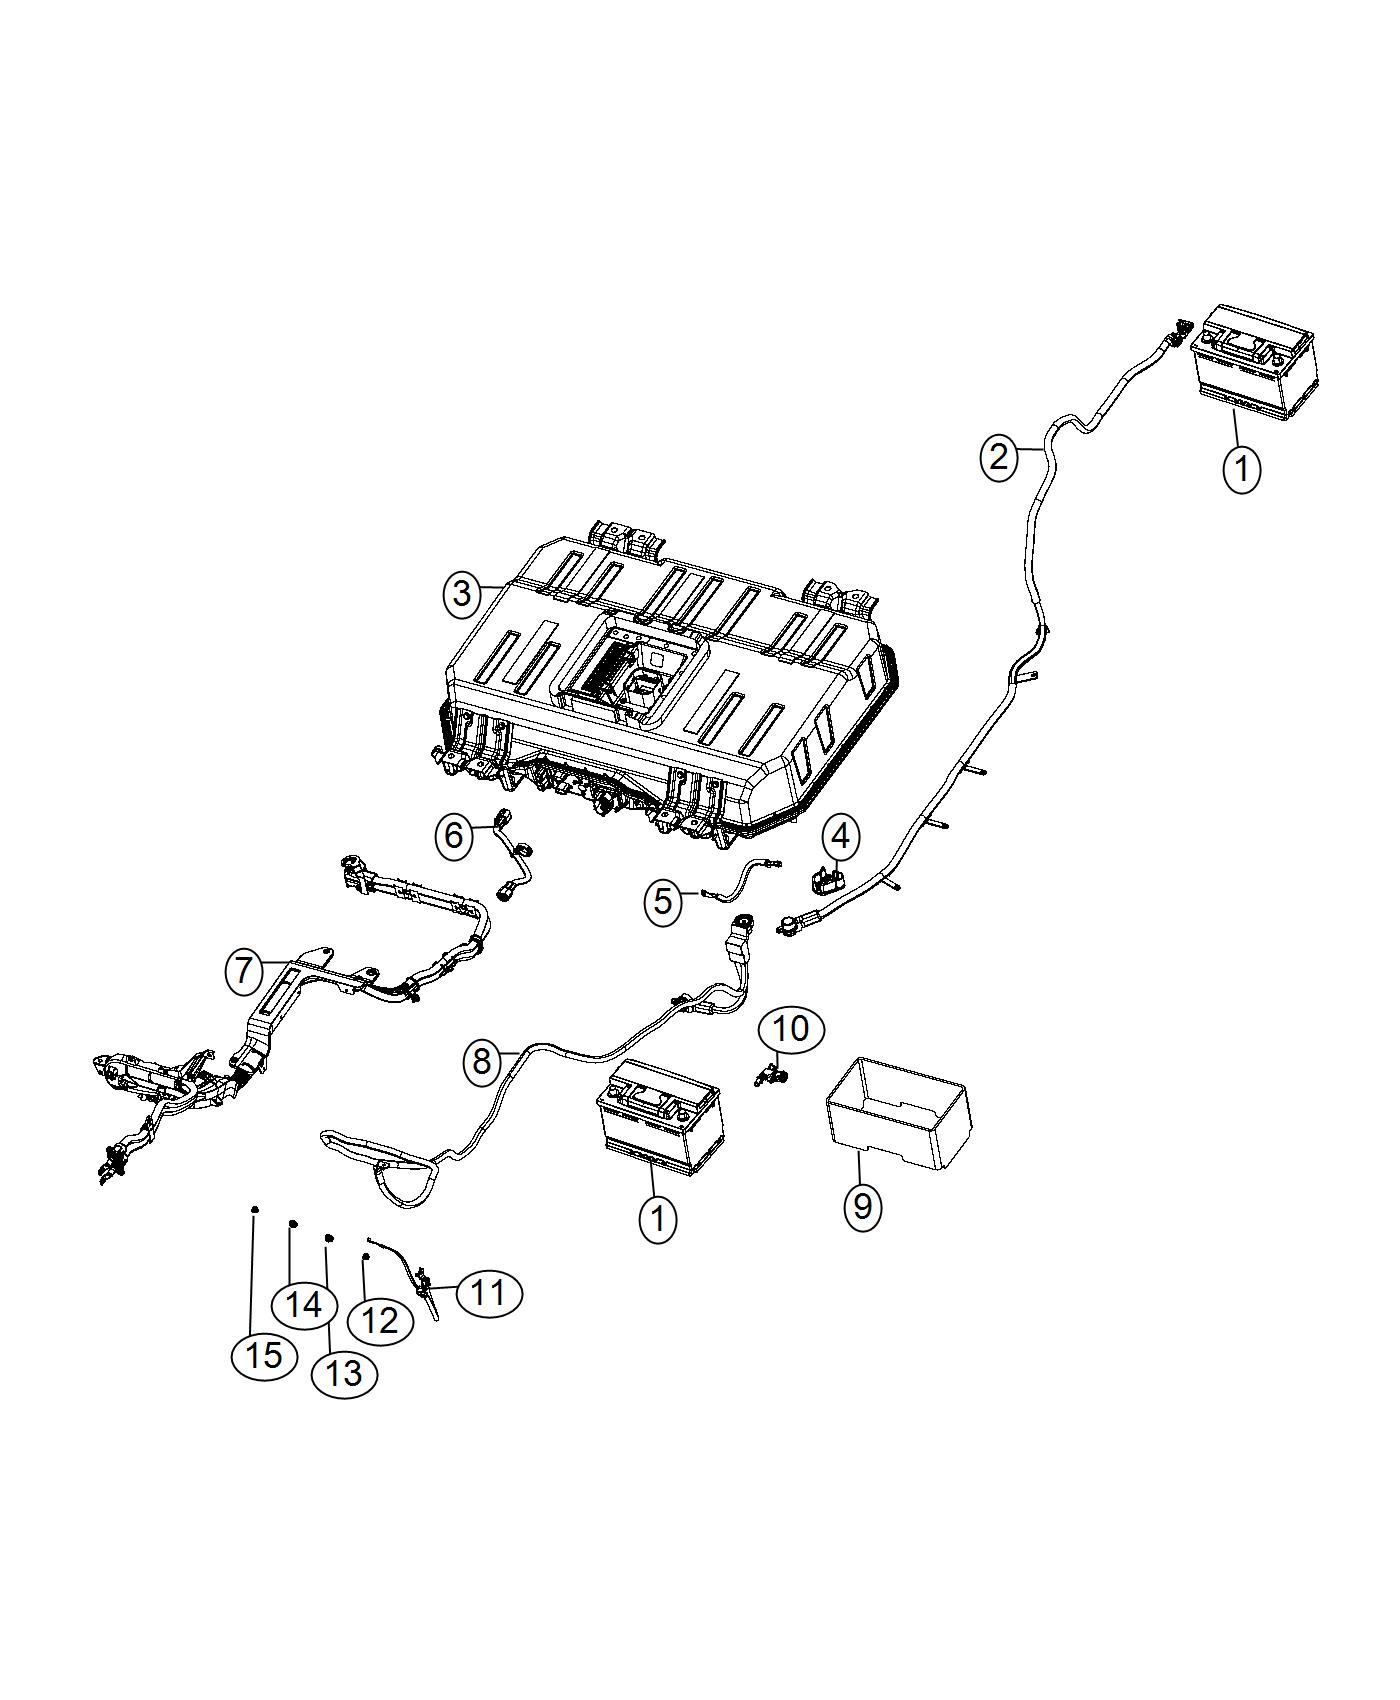 Chrysler Pacifica Wiring  Battery Negative   Phev Adaptation Components